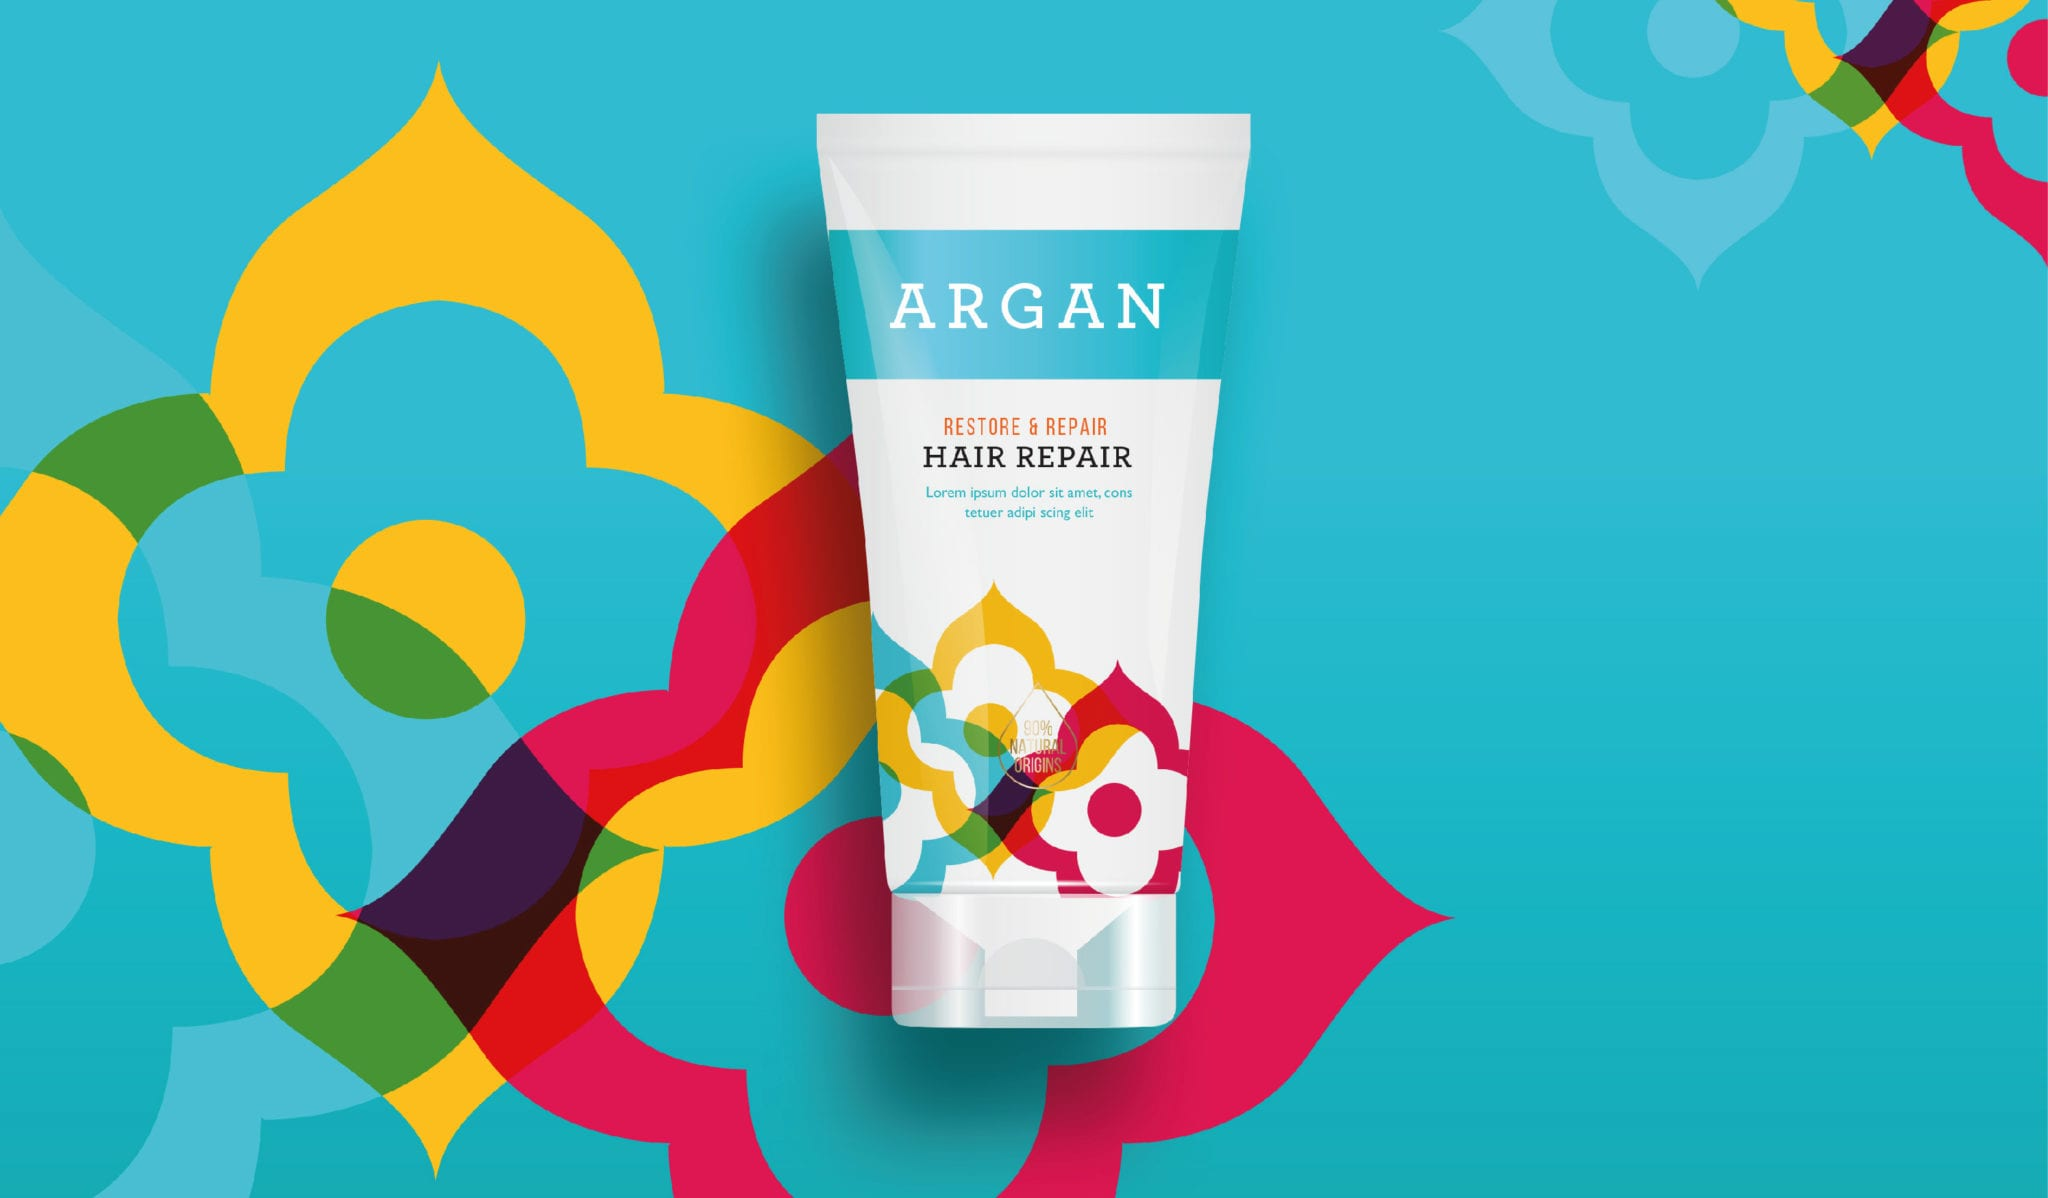 argan oil product design